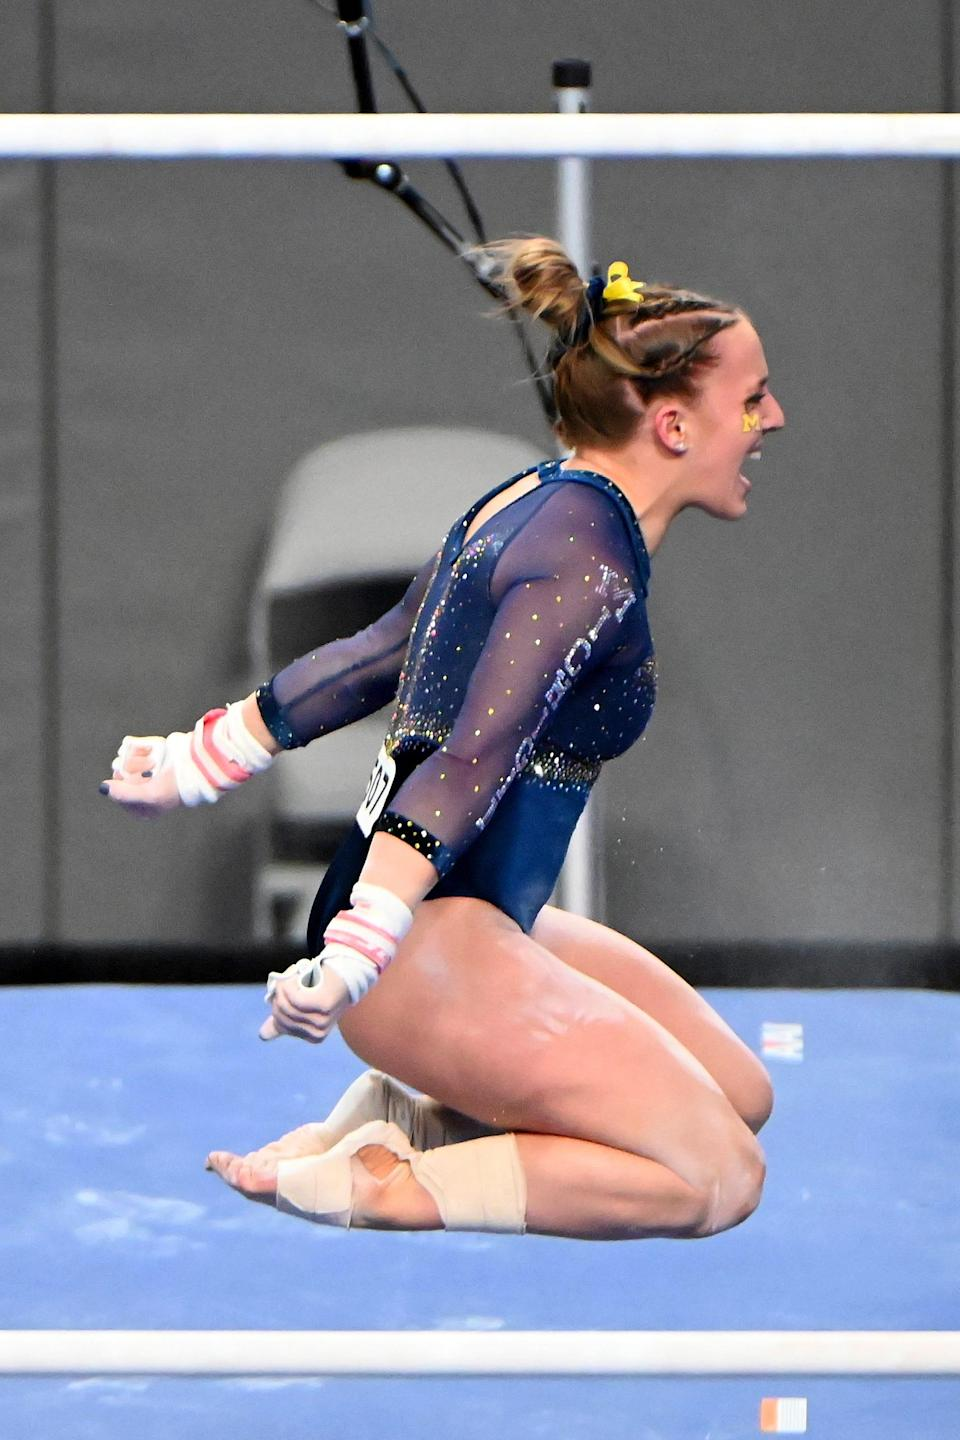 Michigan's Abby Heiskell celebrates after her performance on the uneven bars during the NCAA championships in Fort Worth, Texas, on Saturday, April 17, 2021.